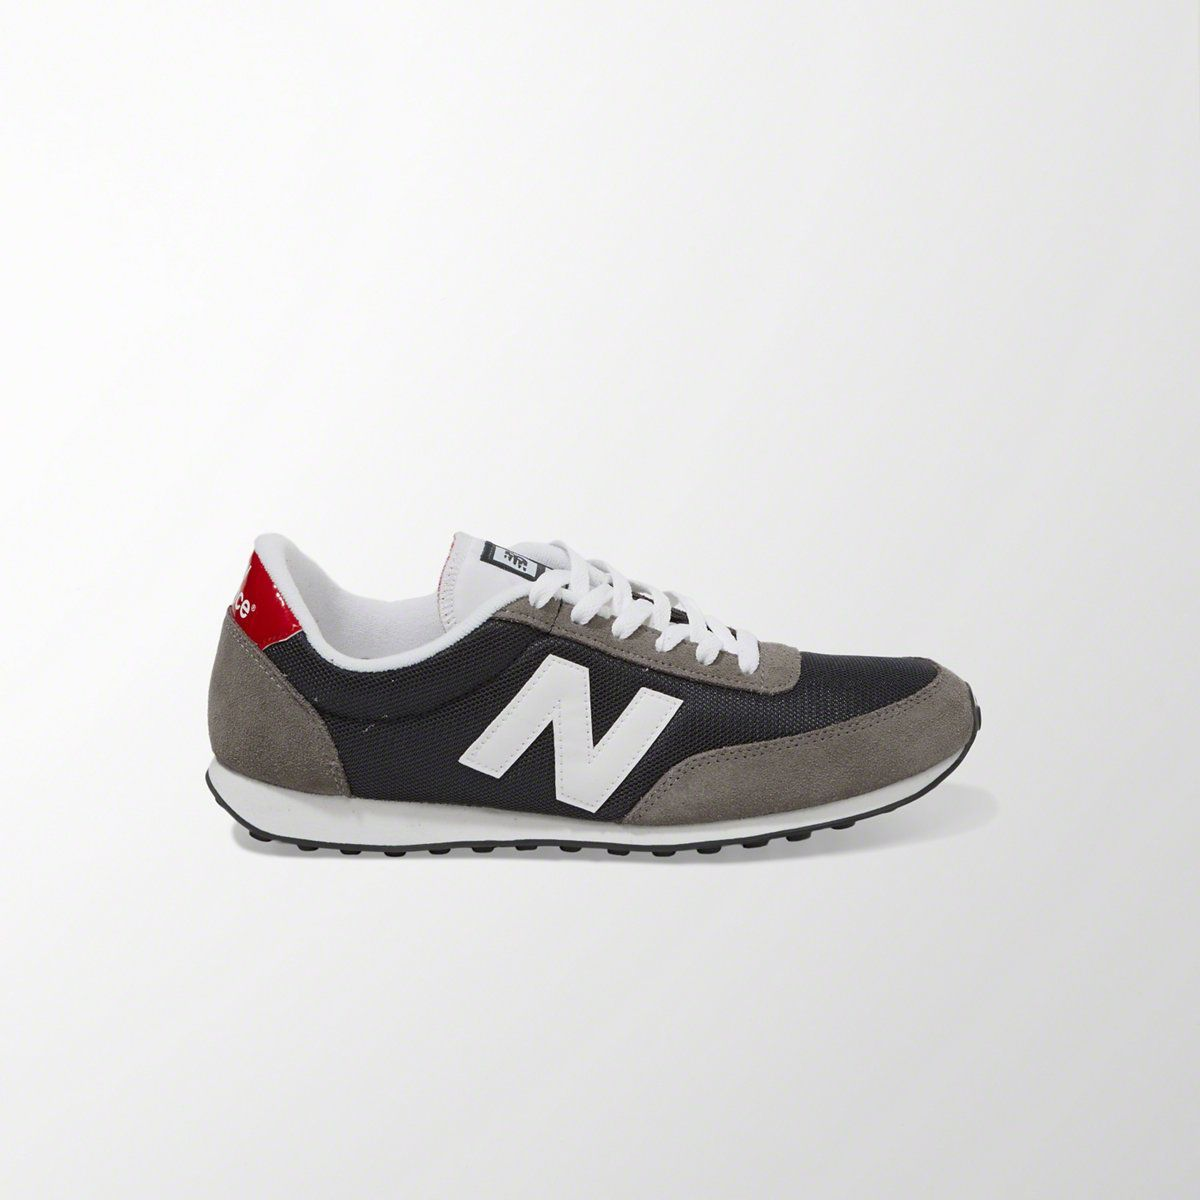 New Balance Men's 411 Unisex Sneakers in Navy Blue/Grey - Size 5